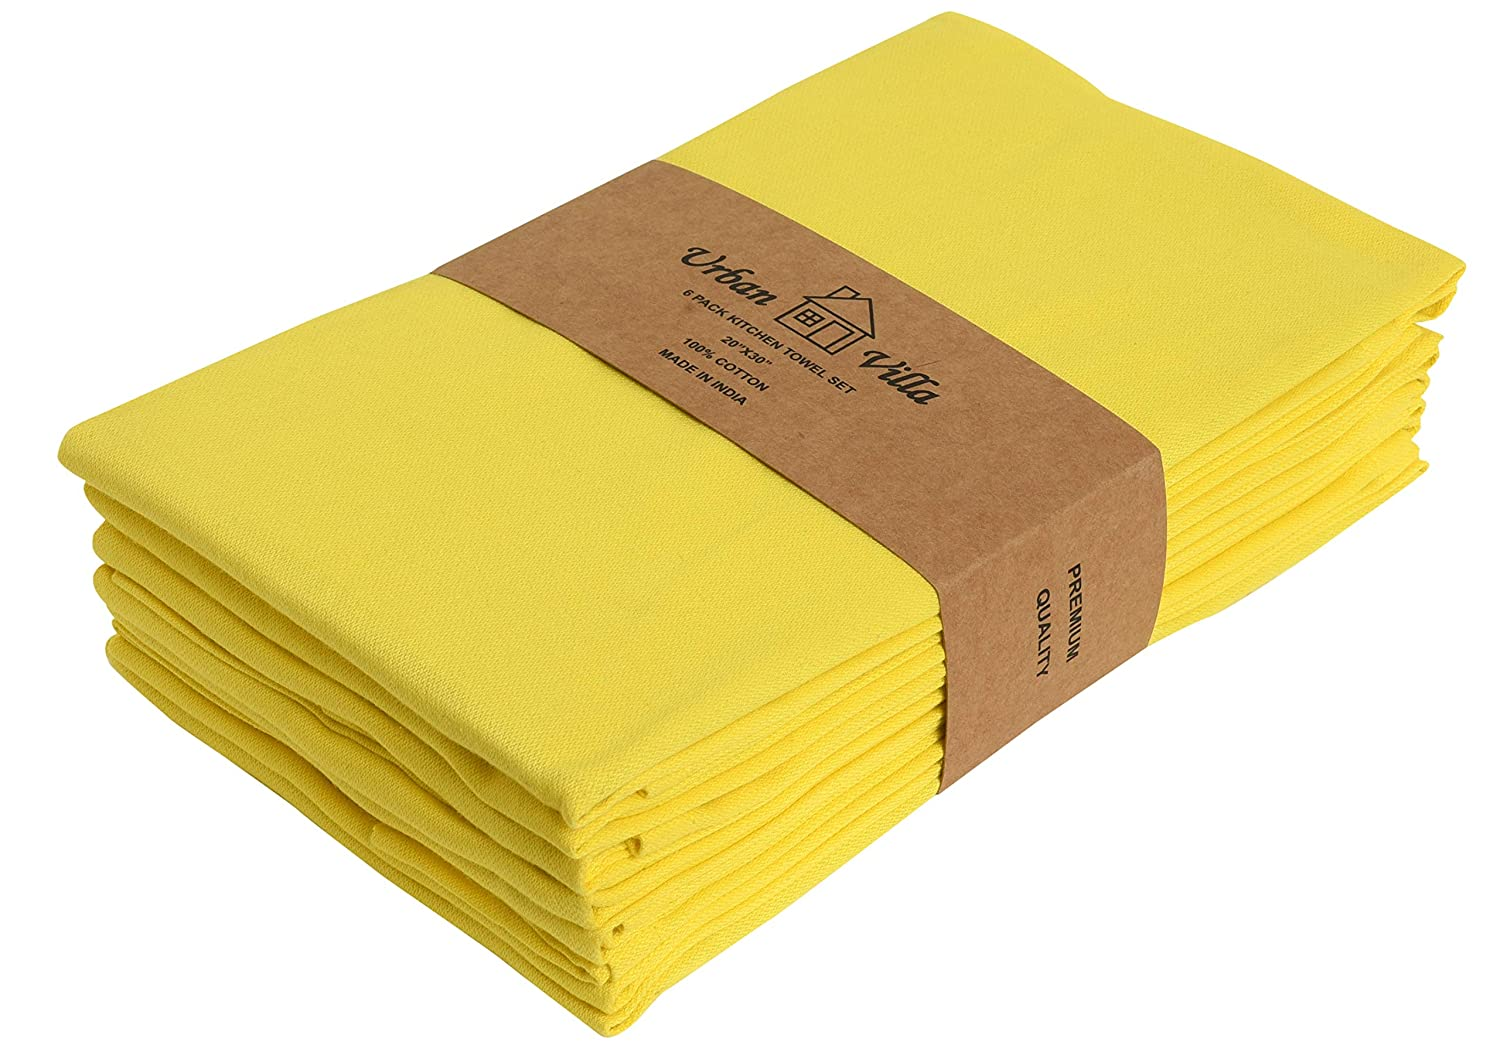 Urban Villa Solid Satin Weave - Premium Quality, Kitchen Towels, Ultra Soft,100% Cotton Dish Towels, (Size: 20X30 Inch), Yellow Highly Absorbent Bar Towels & Tea Towels - (Set of 6)